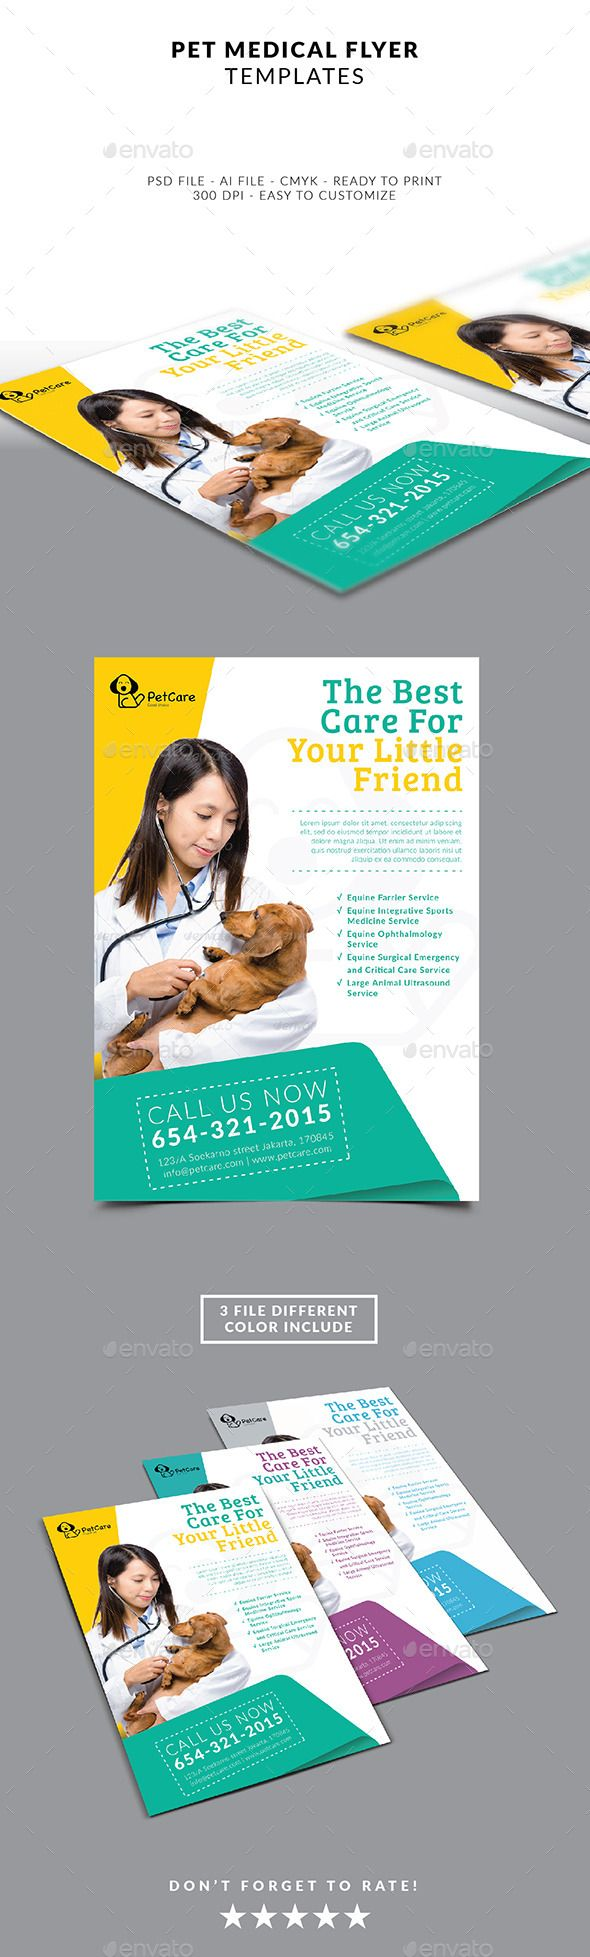 Pet Services Flyer Template   Pet services, Flyer template and Template